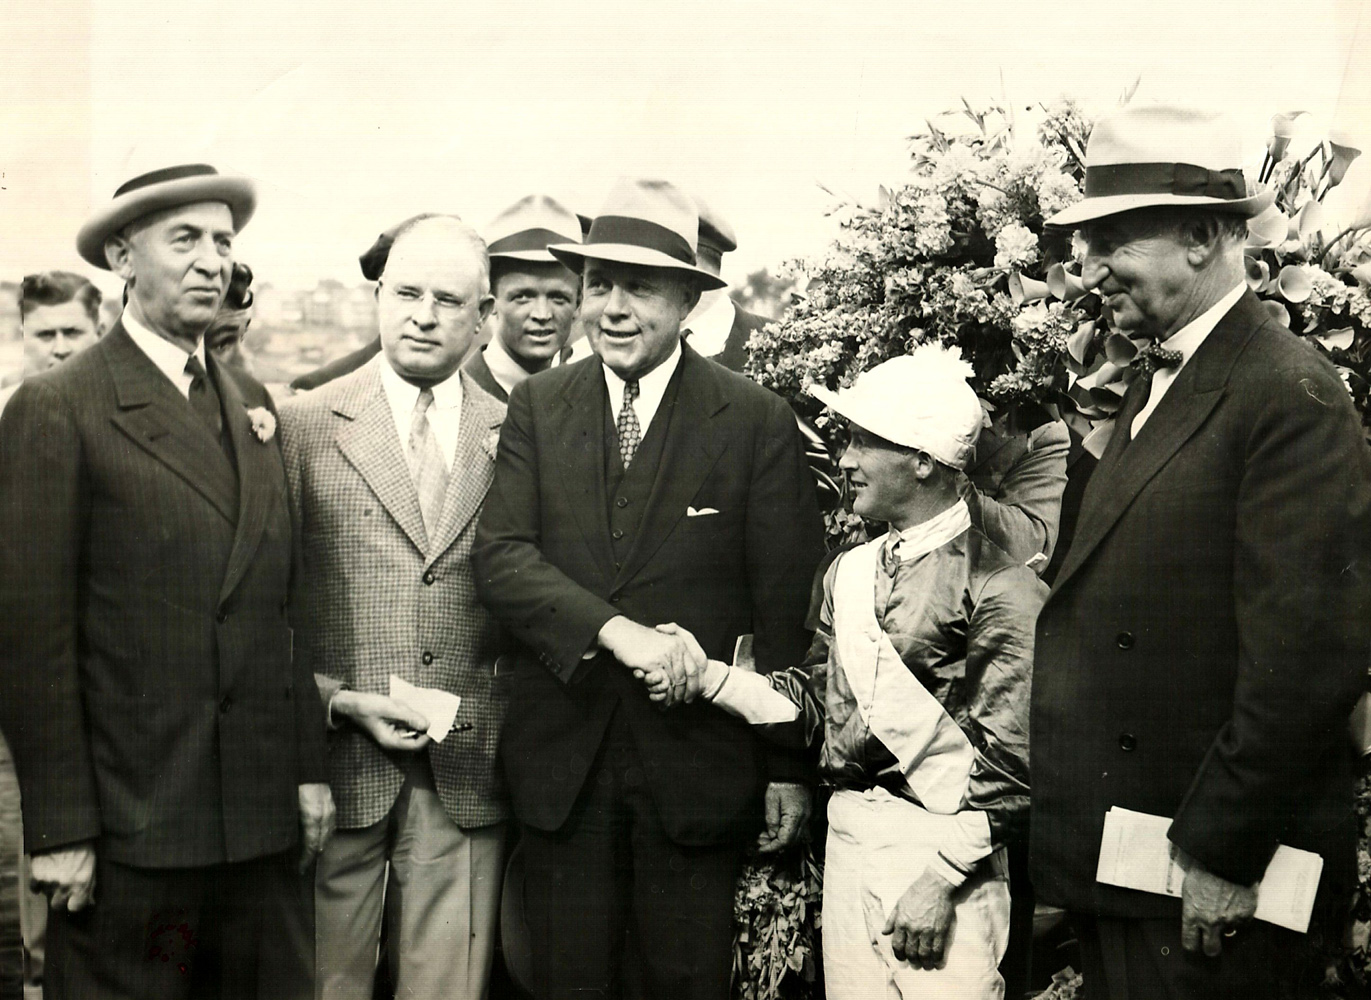 V. C. Wetmore, James H. Connors, Hal Price Headley, Nick Wall, and Charles F. Adams at the 1938 Massachusetts Handicap (Courtesy of Ken Grayson)